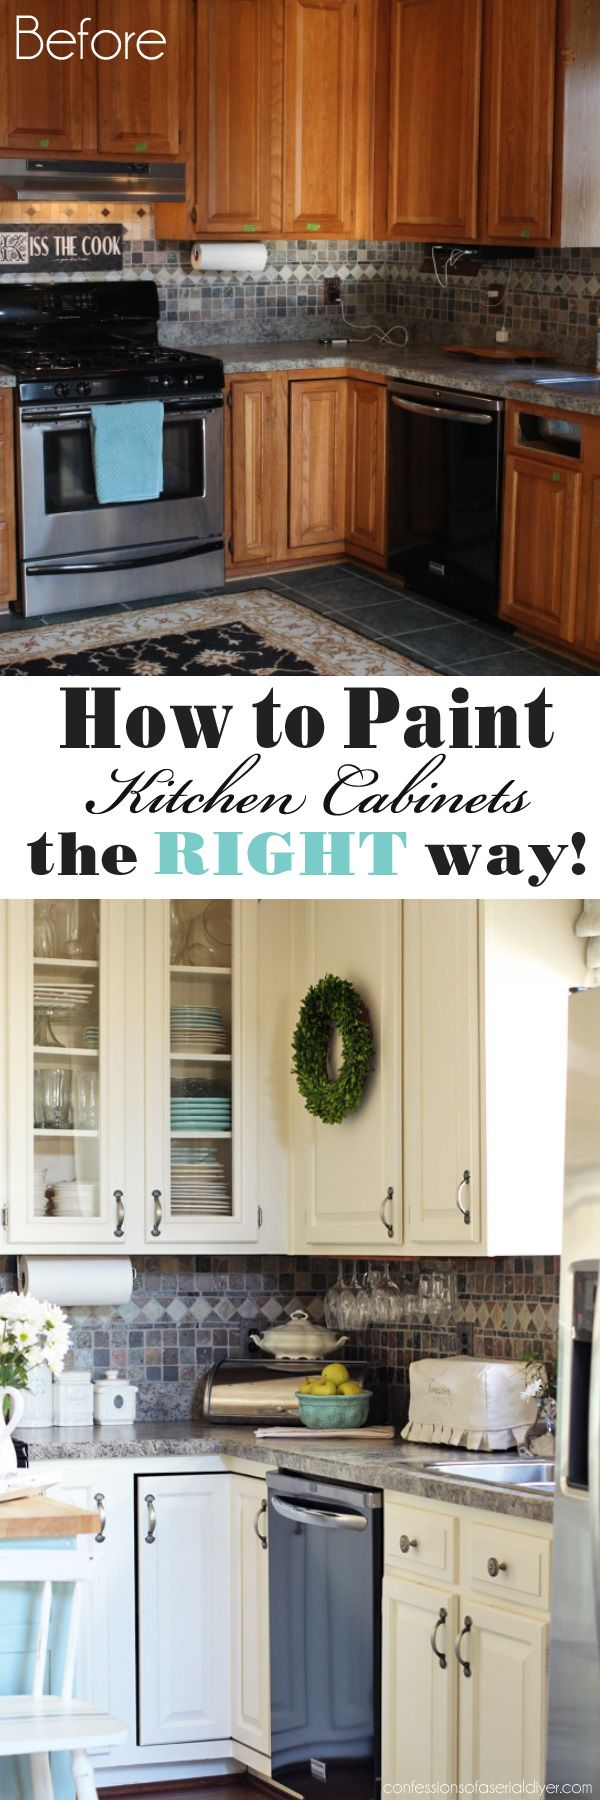 25 best ideas about white kitchen cabinets on pinterest - How to redo bathroom cabinets for cheap ...